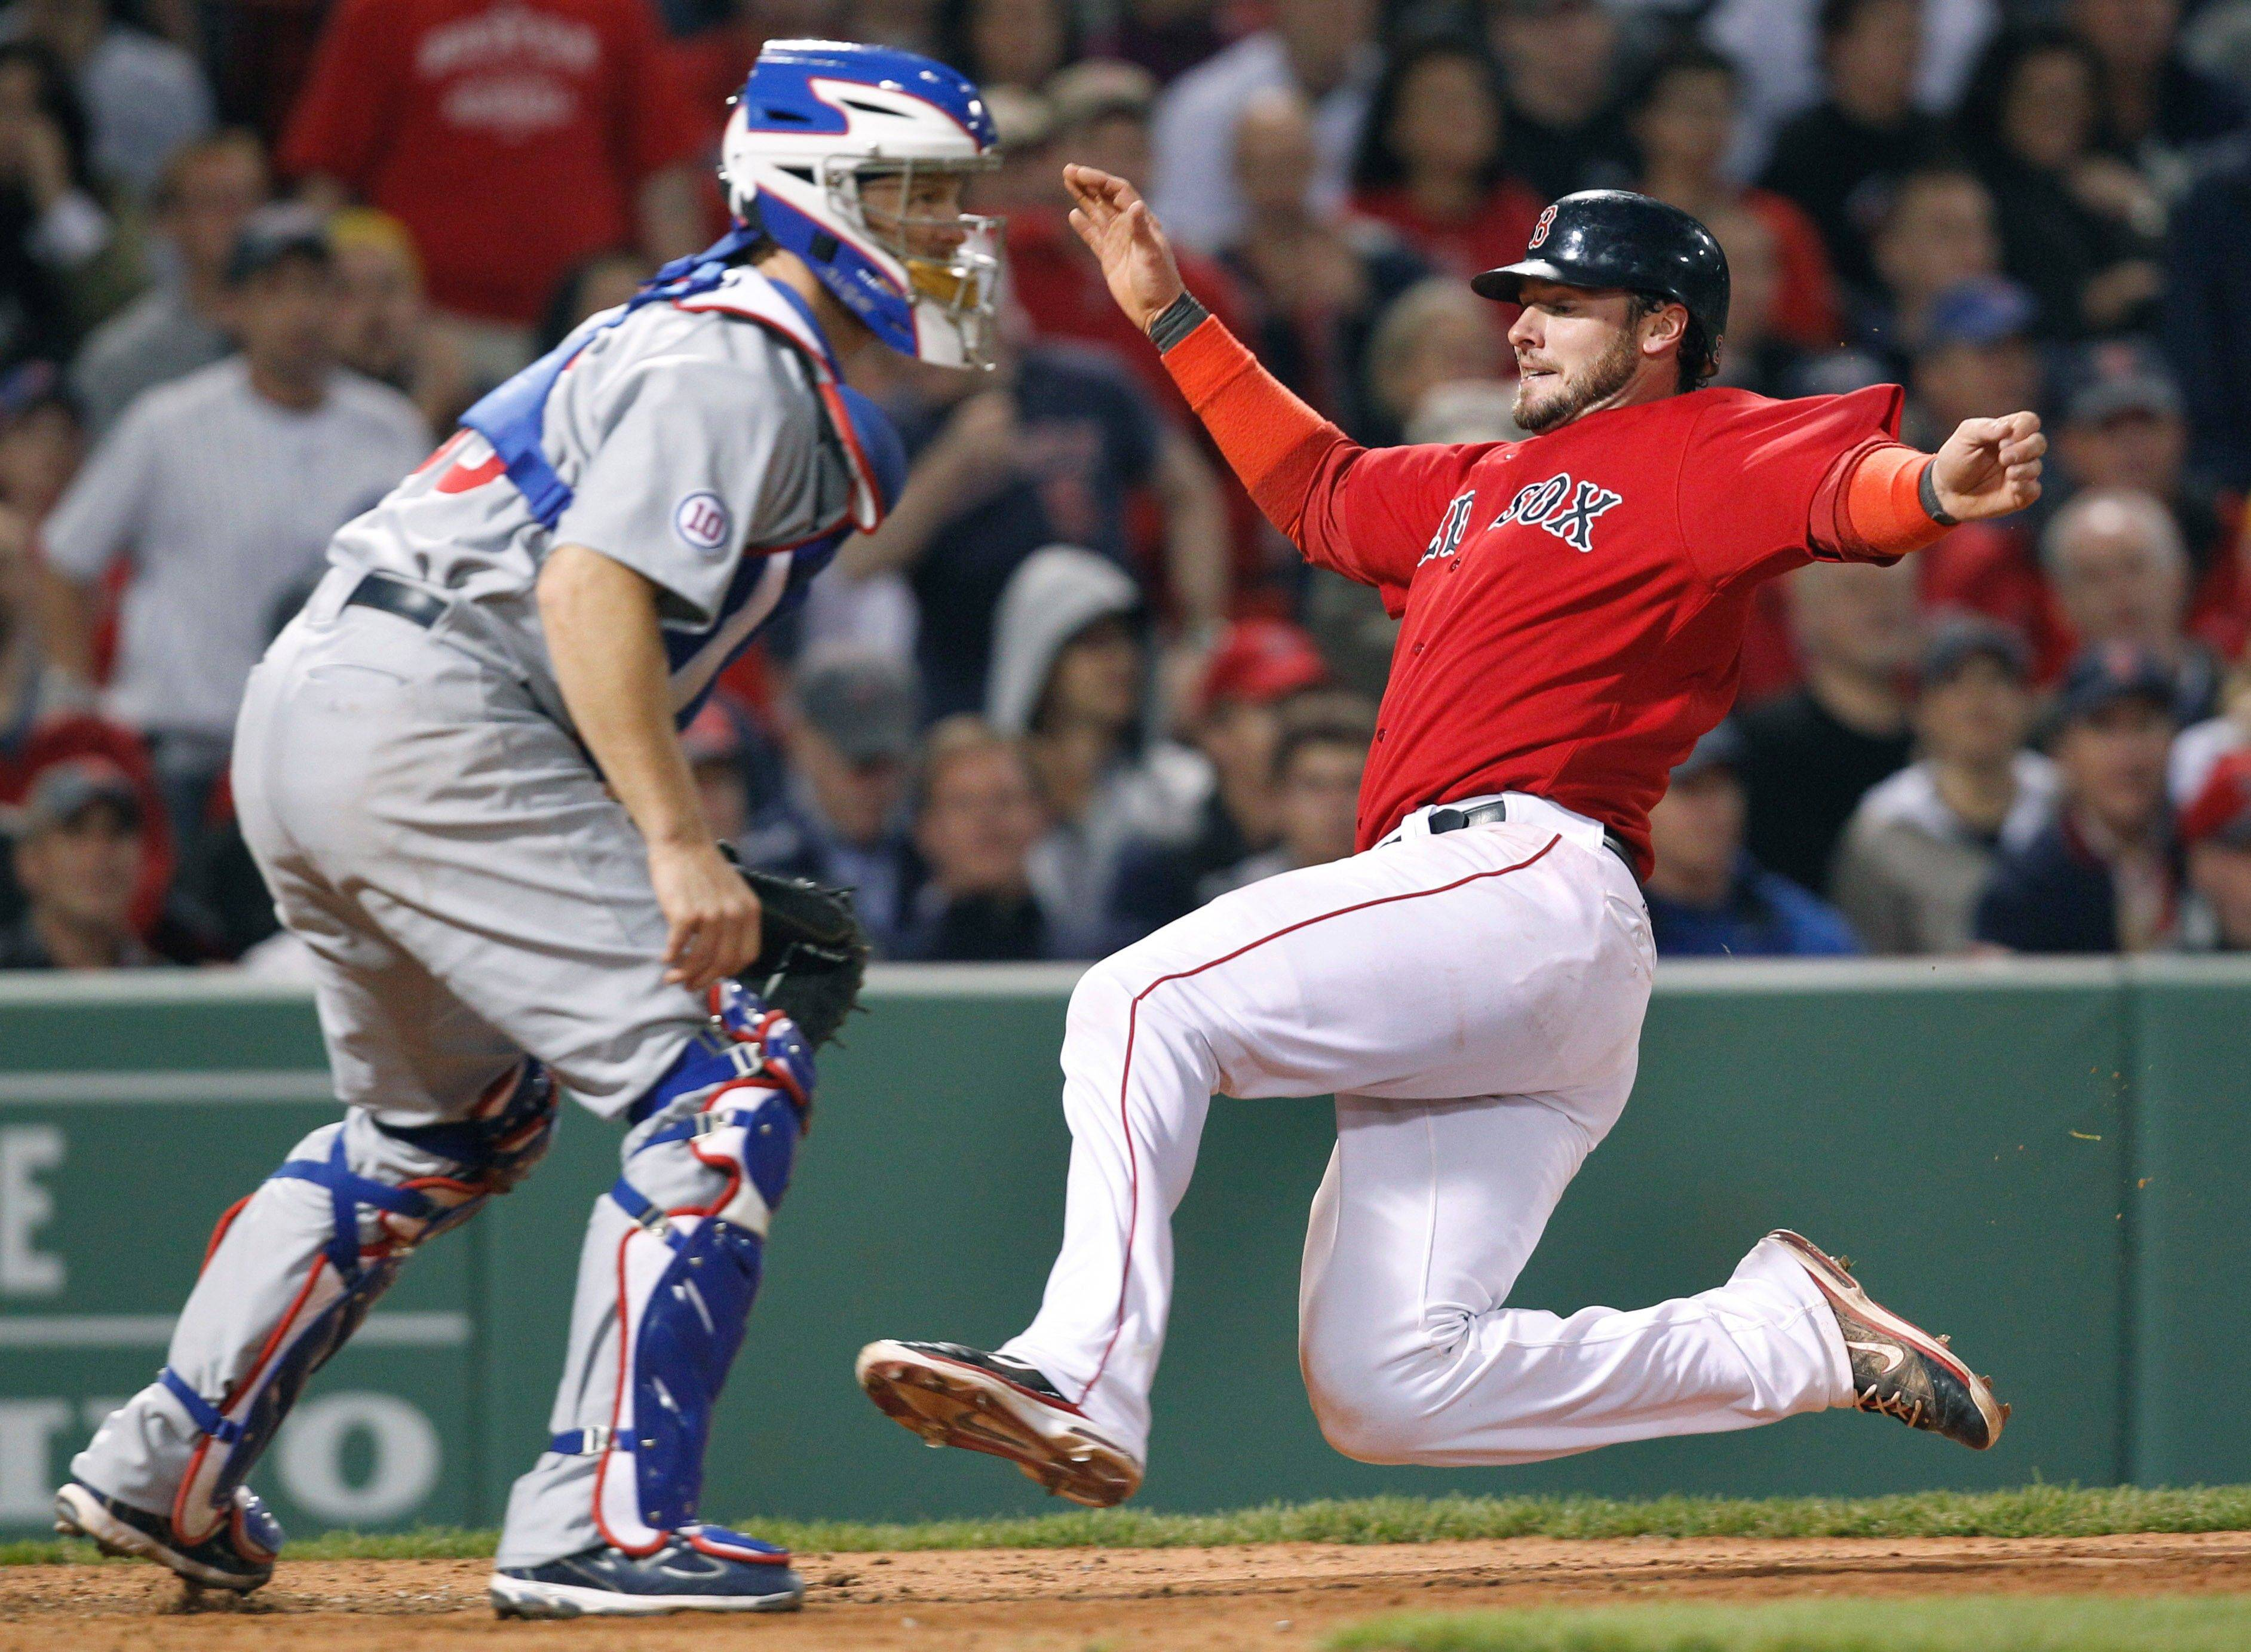 Boston Red Sox's Jarrod Saltalamacchia slides safe into home plate as Chicago Cubs catcher Koyie Hill waits for a throw on a single by Adrian Gonzalez in the eighth inning of an interleague baseball game at Fenway Park in Boston Friday, May 20, 2011. The Red Sox won 15-5.